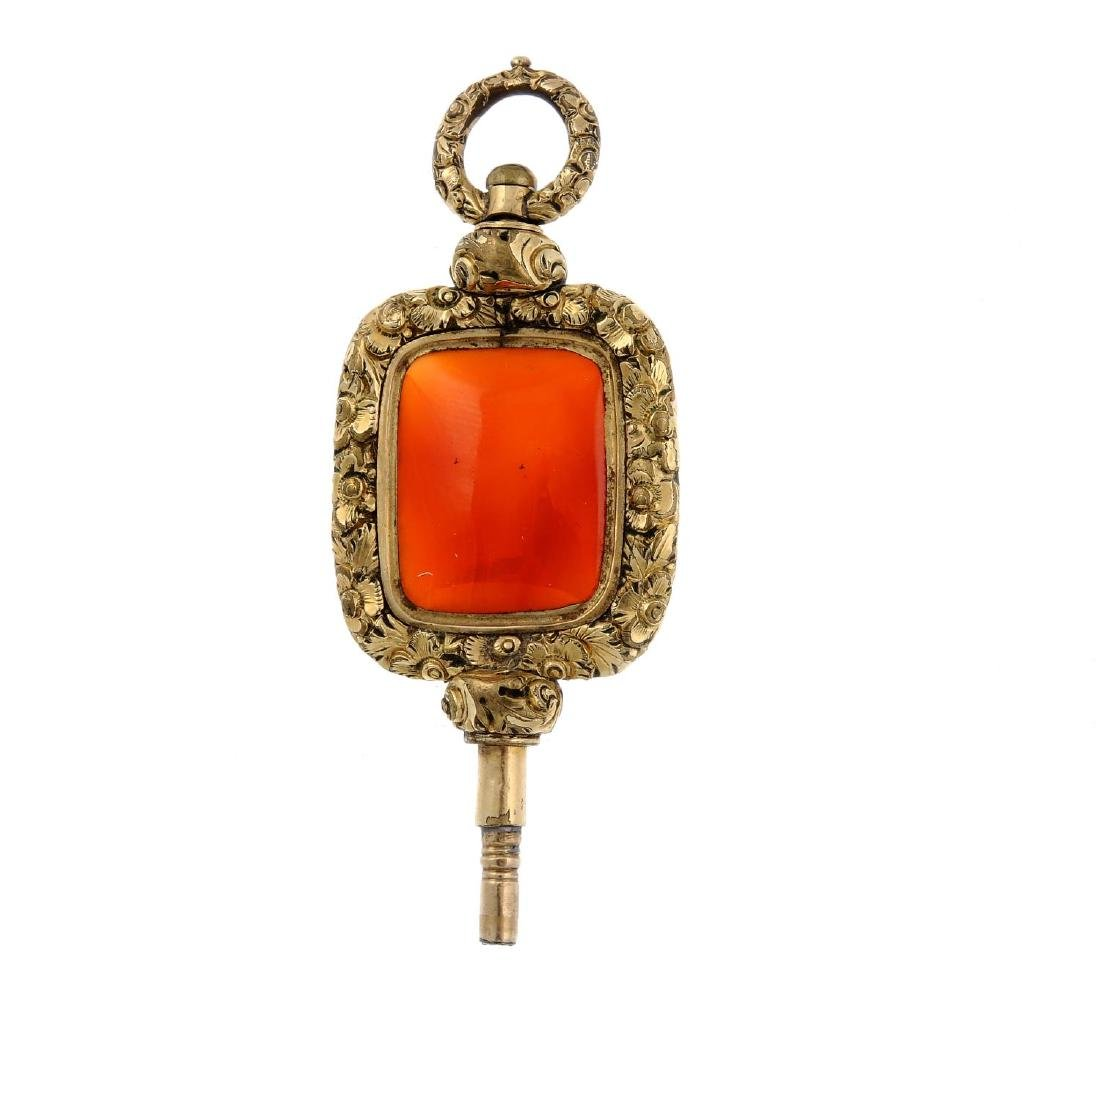 An early 19th century carnelian watch key. The